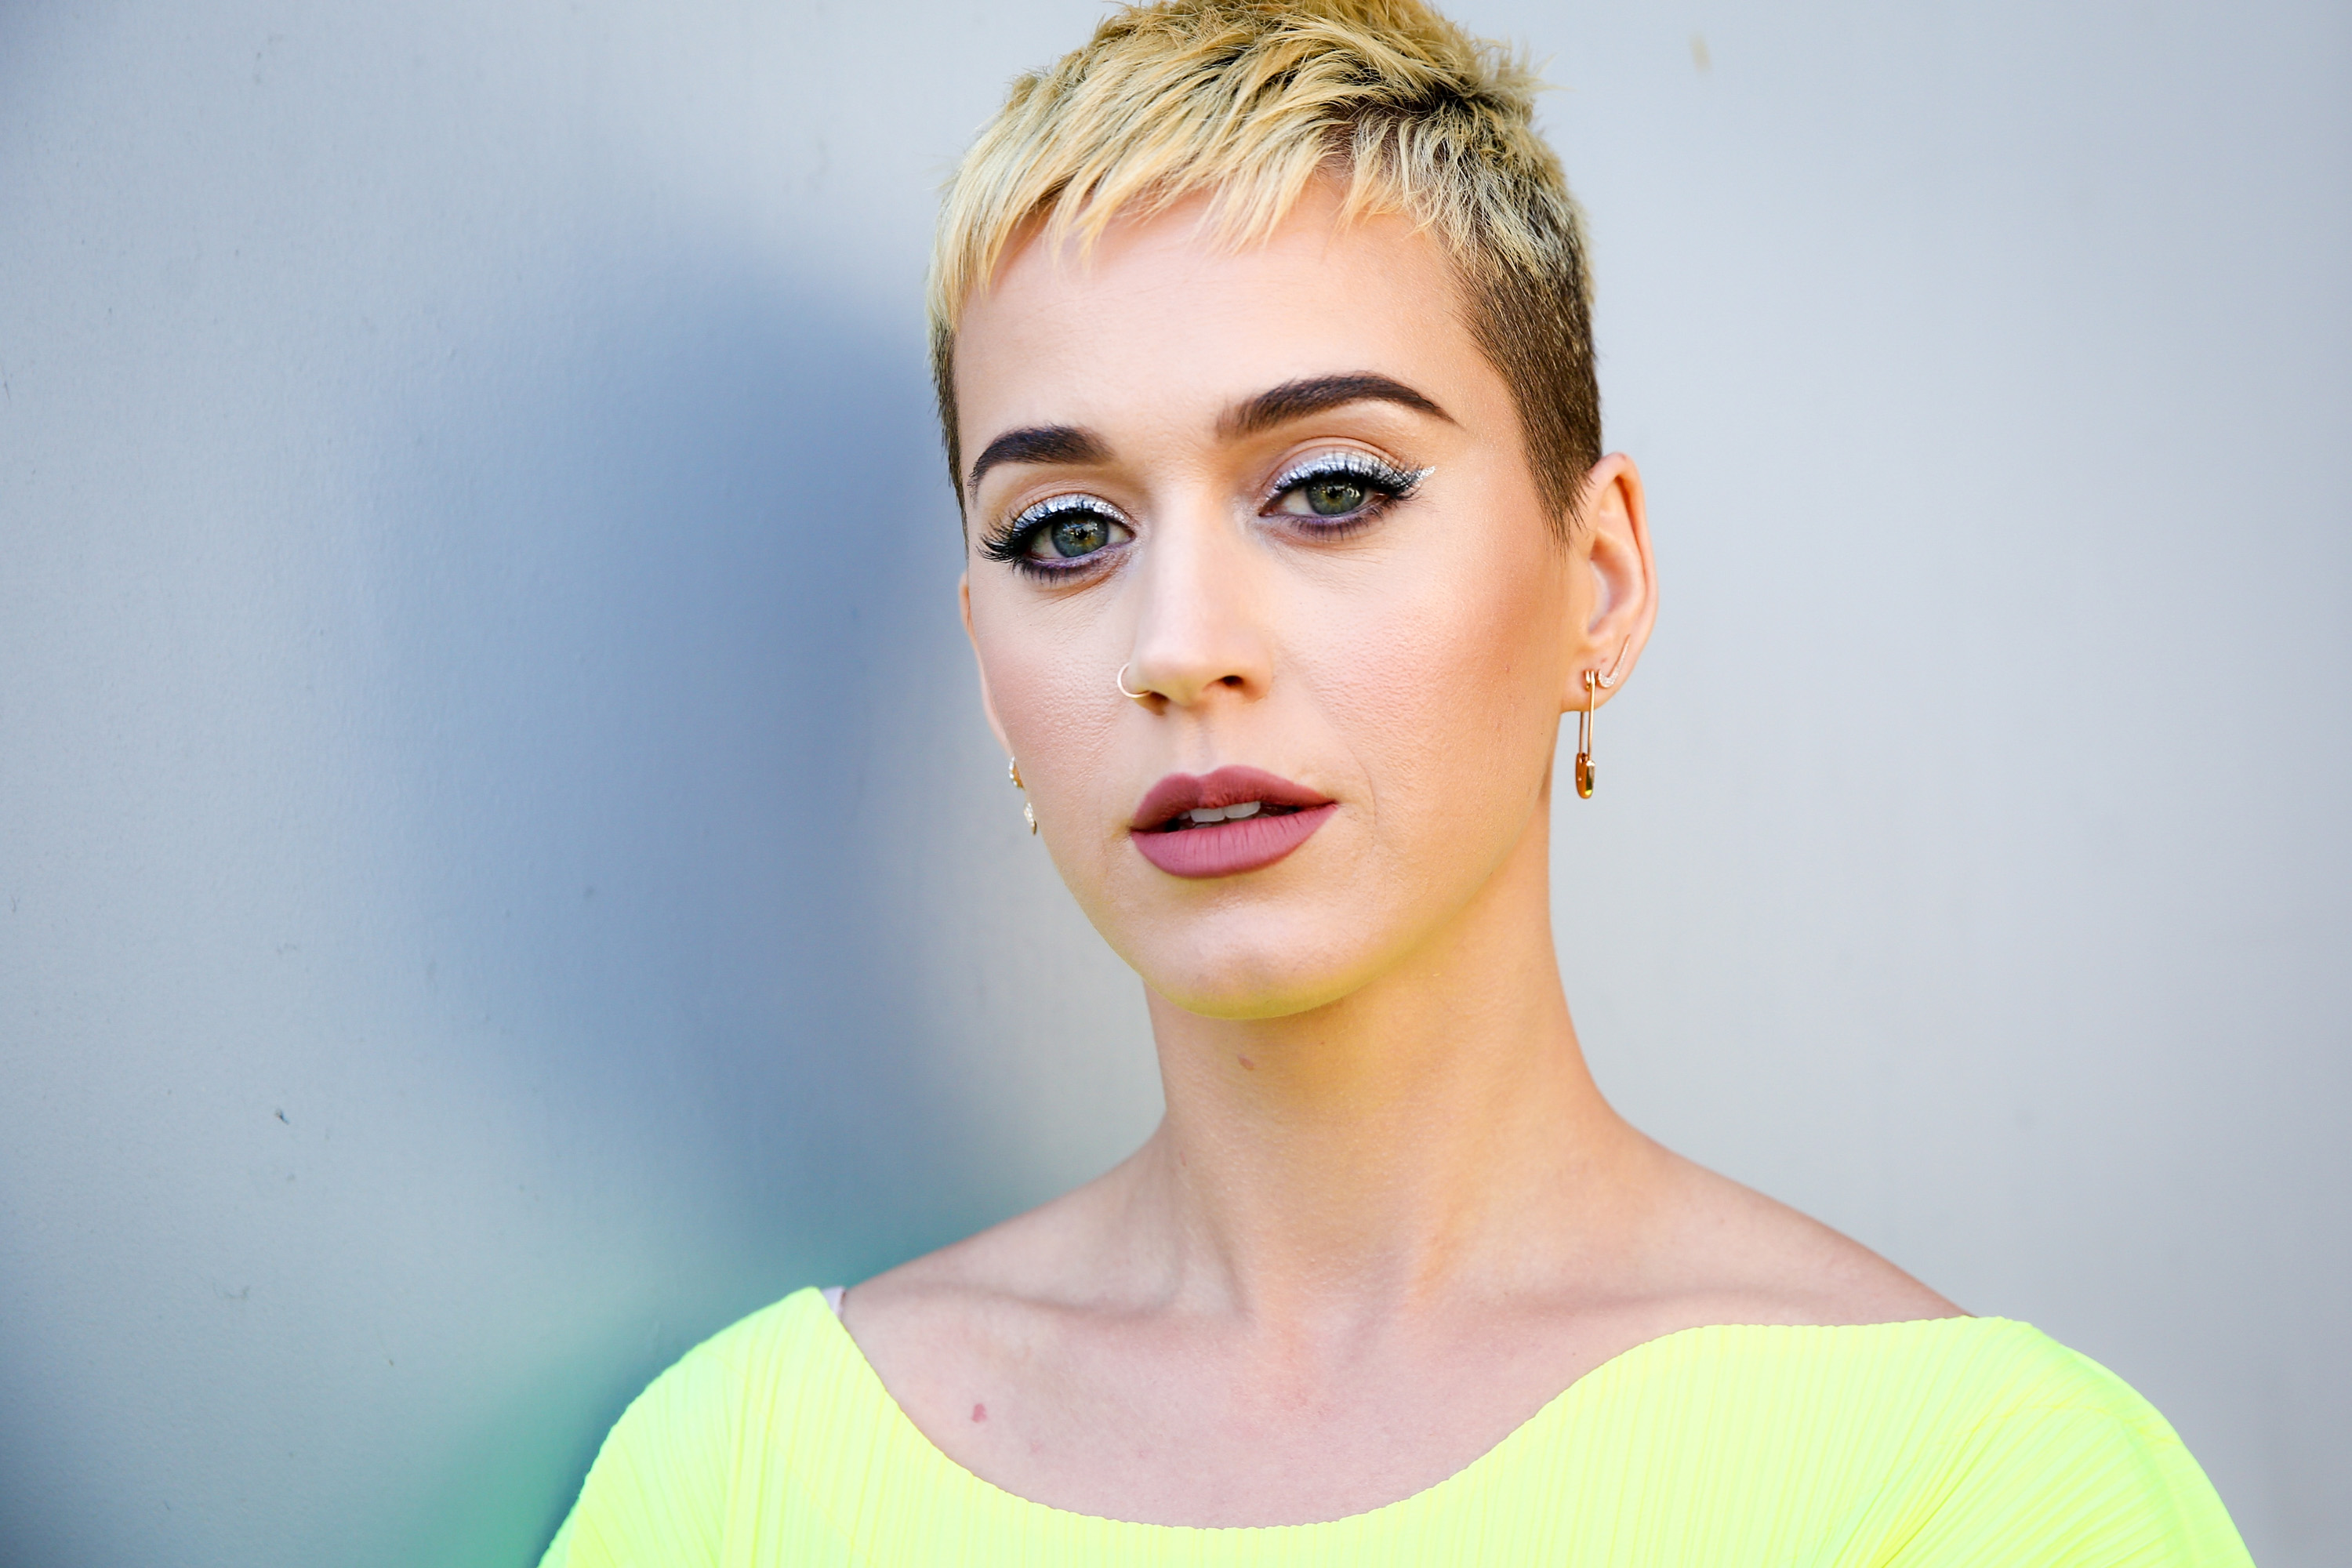 Hot Blonde Katy Perry Pics 1